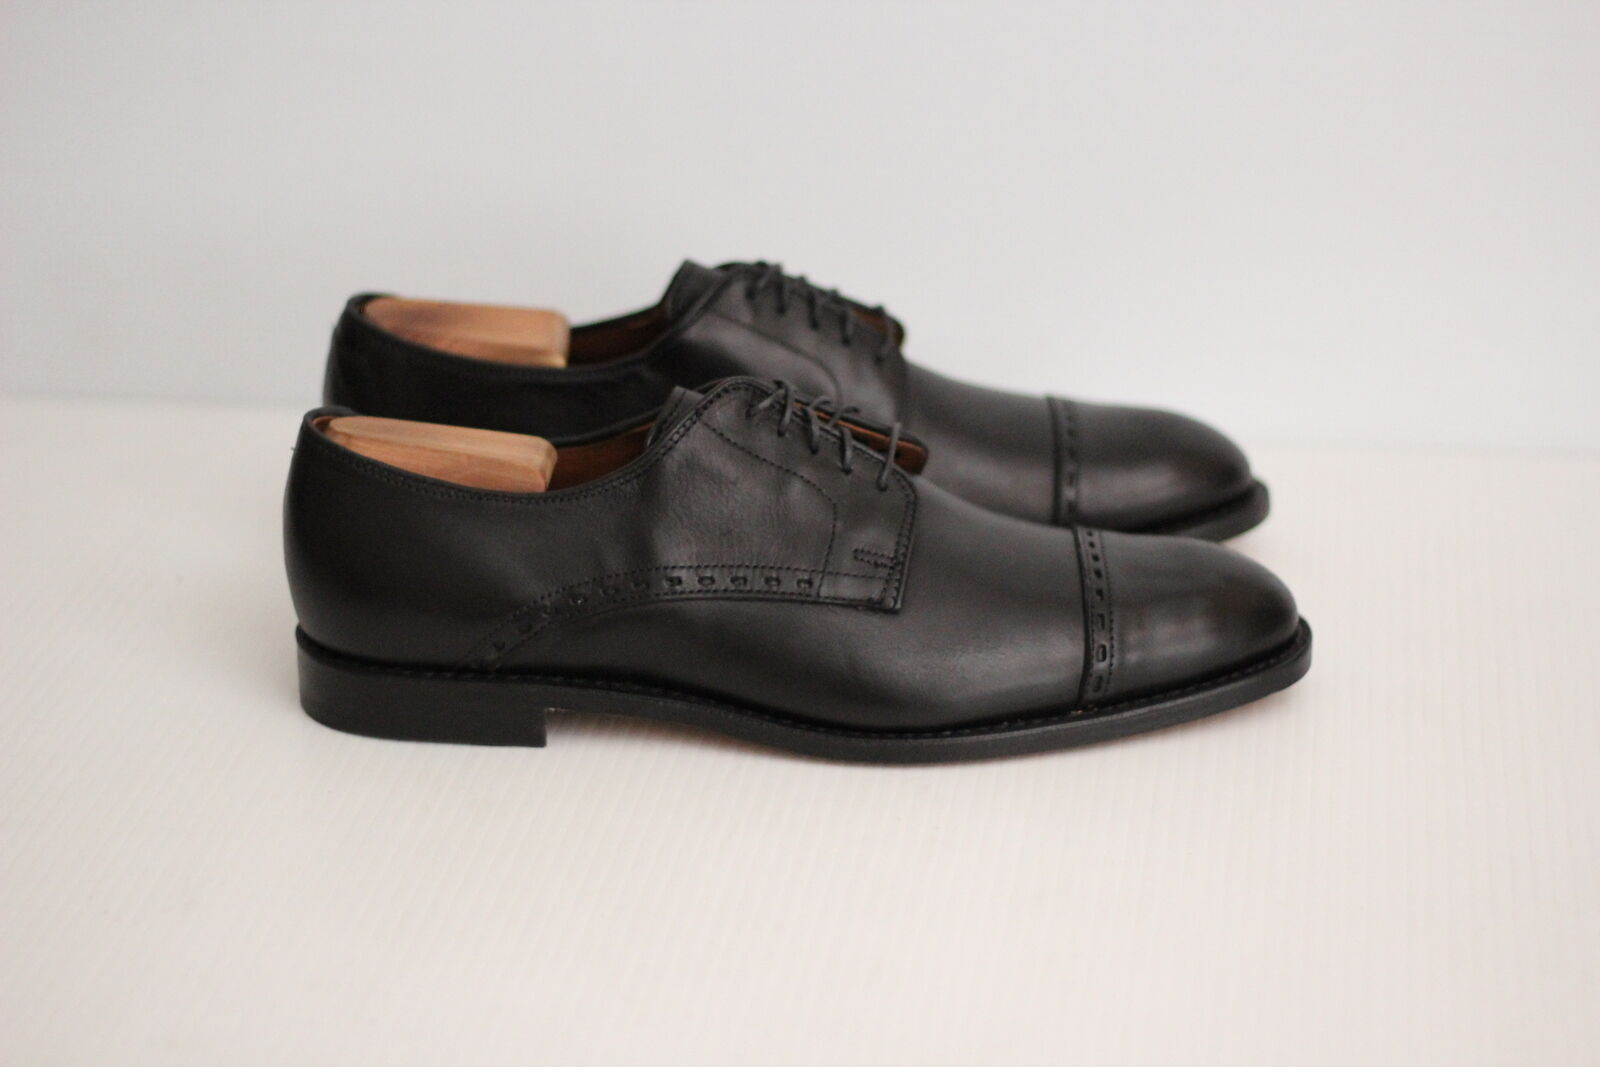 NEW Allen Edmonds 'Madison Ave' Cap Toe Derby Oxford Oxford Oxford - Black - 10.5 D  (V31) eb0cd6